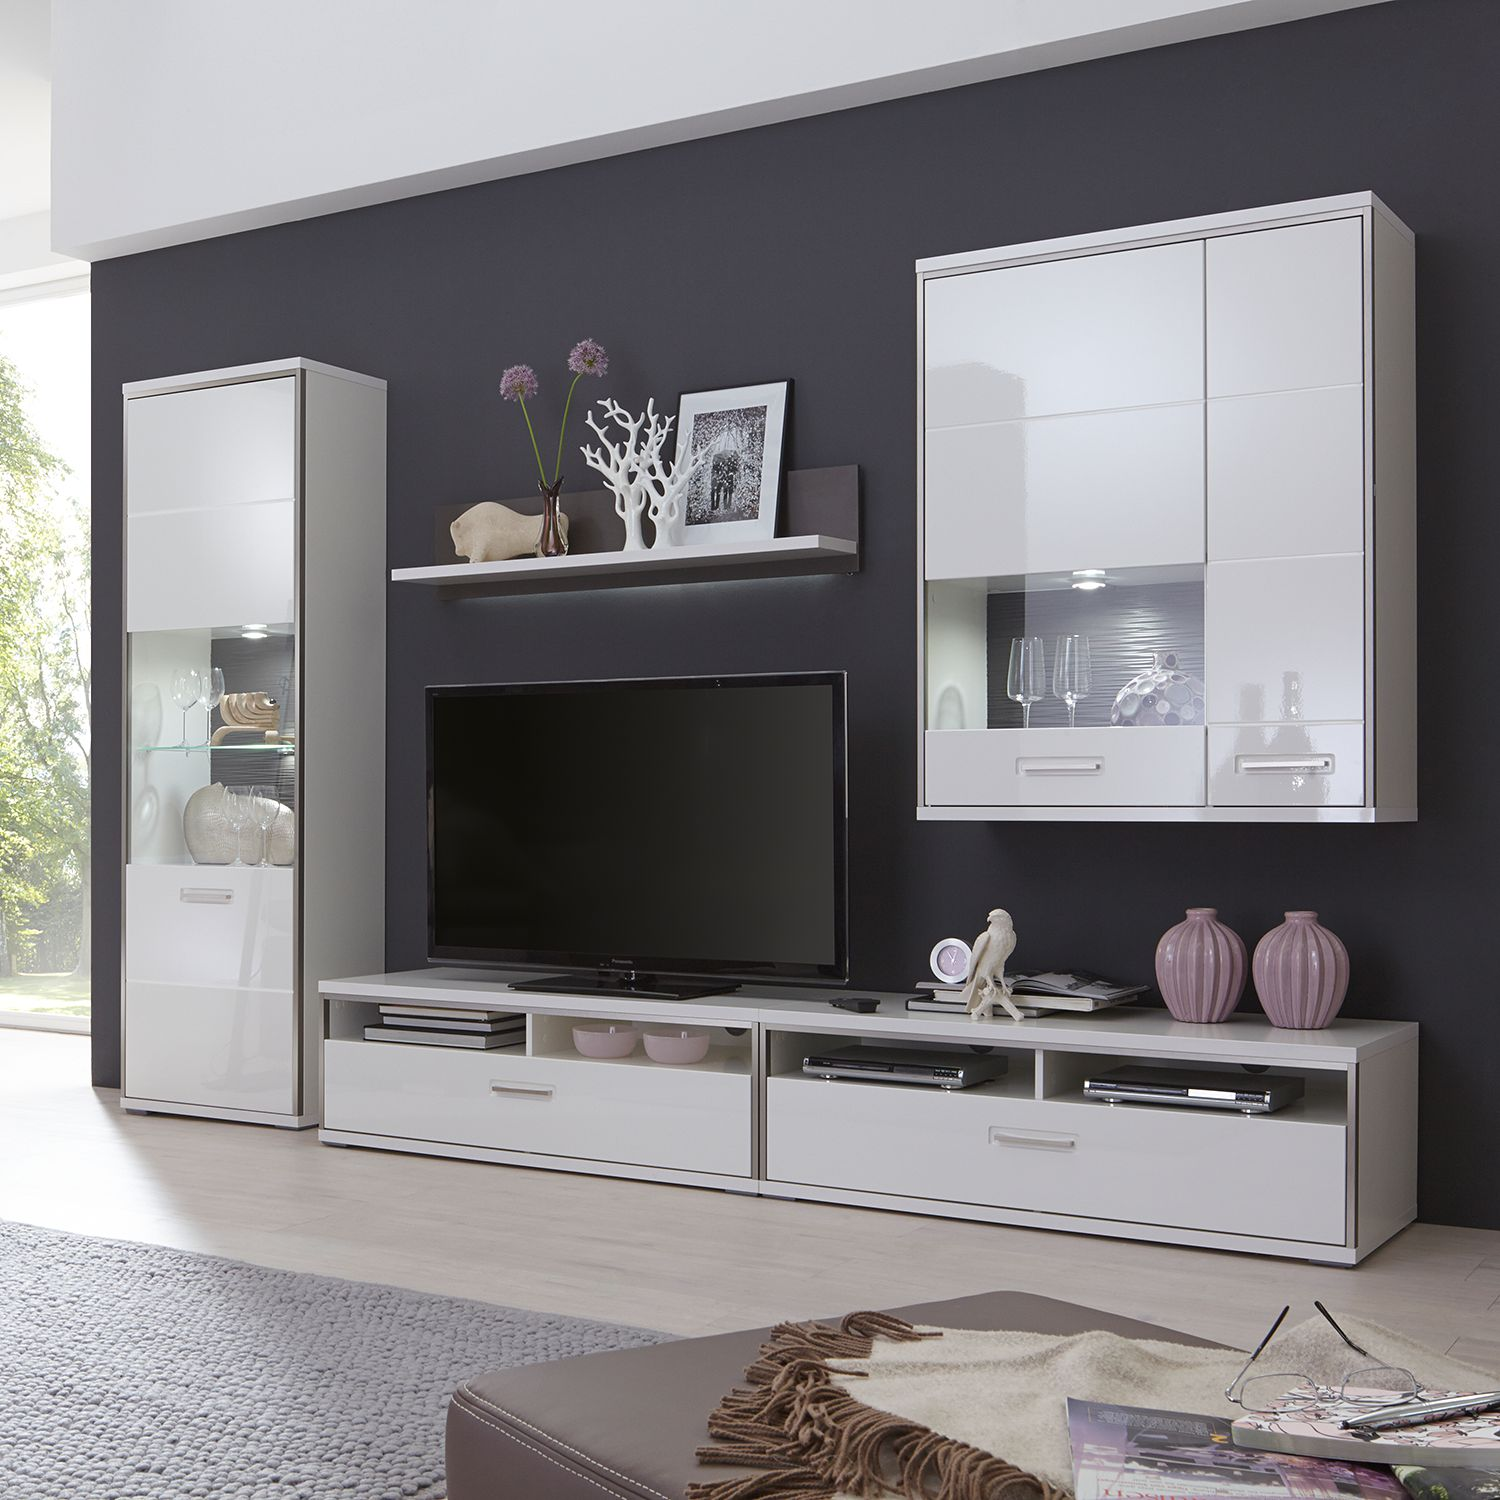 grau hochglanz wohnwand preisvergleich die besten angebote online kaufen. Black Bedroom Furniture Sets. Home Design Ideas